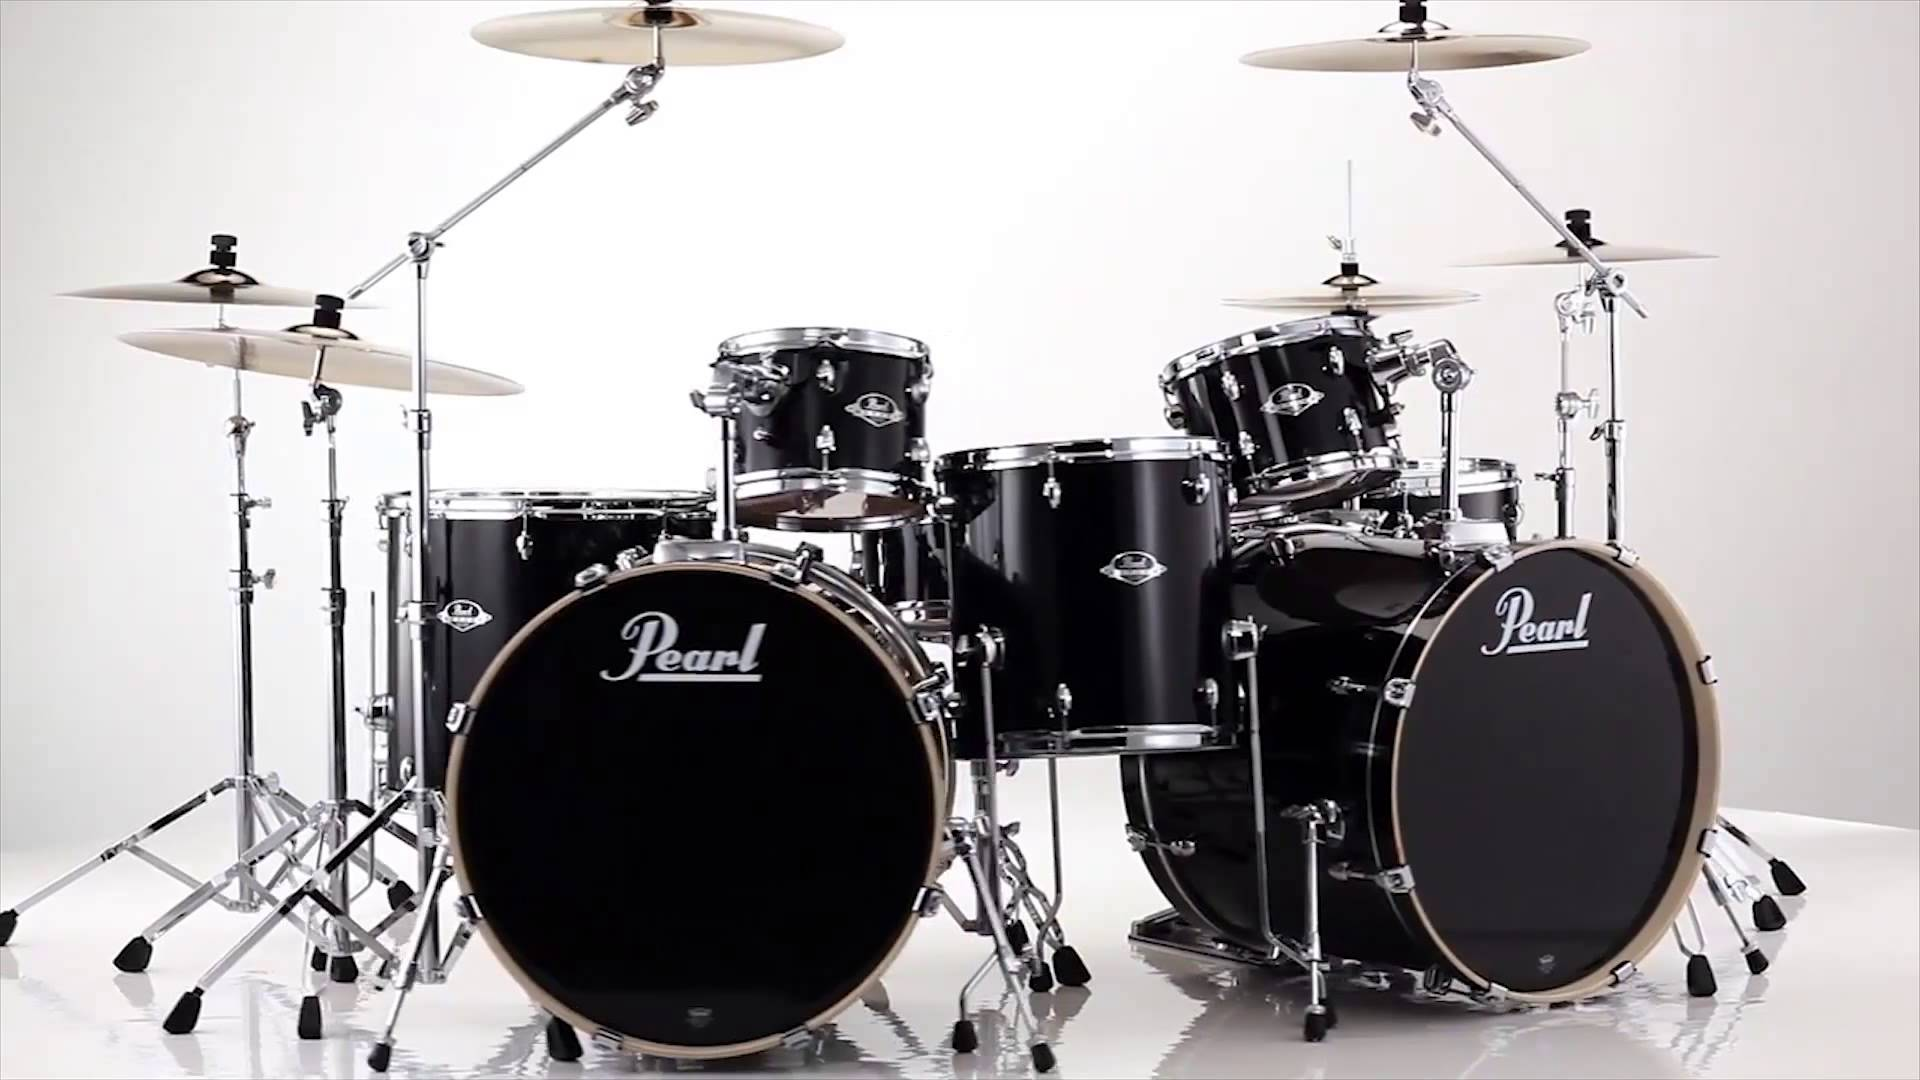 drum set hd wallpapers wallpaper cave. Black Bedroom Furniture Sets. Home Design Ideas